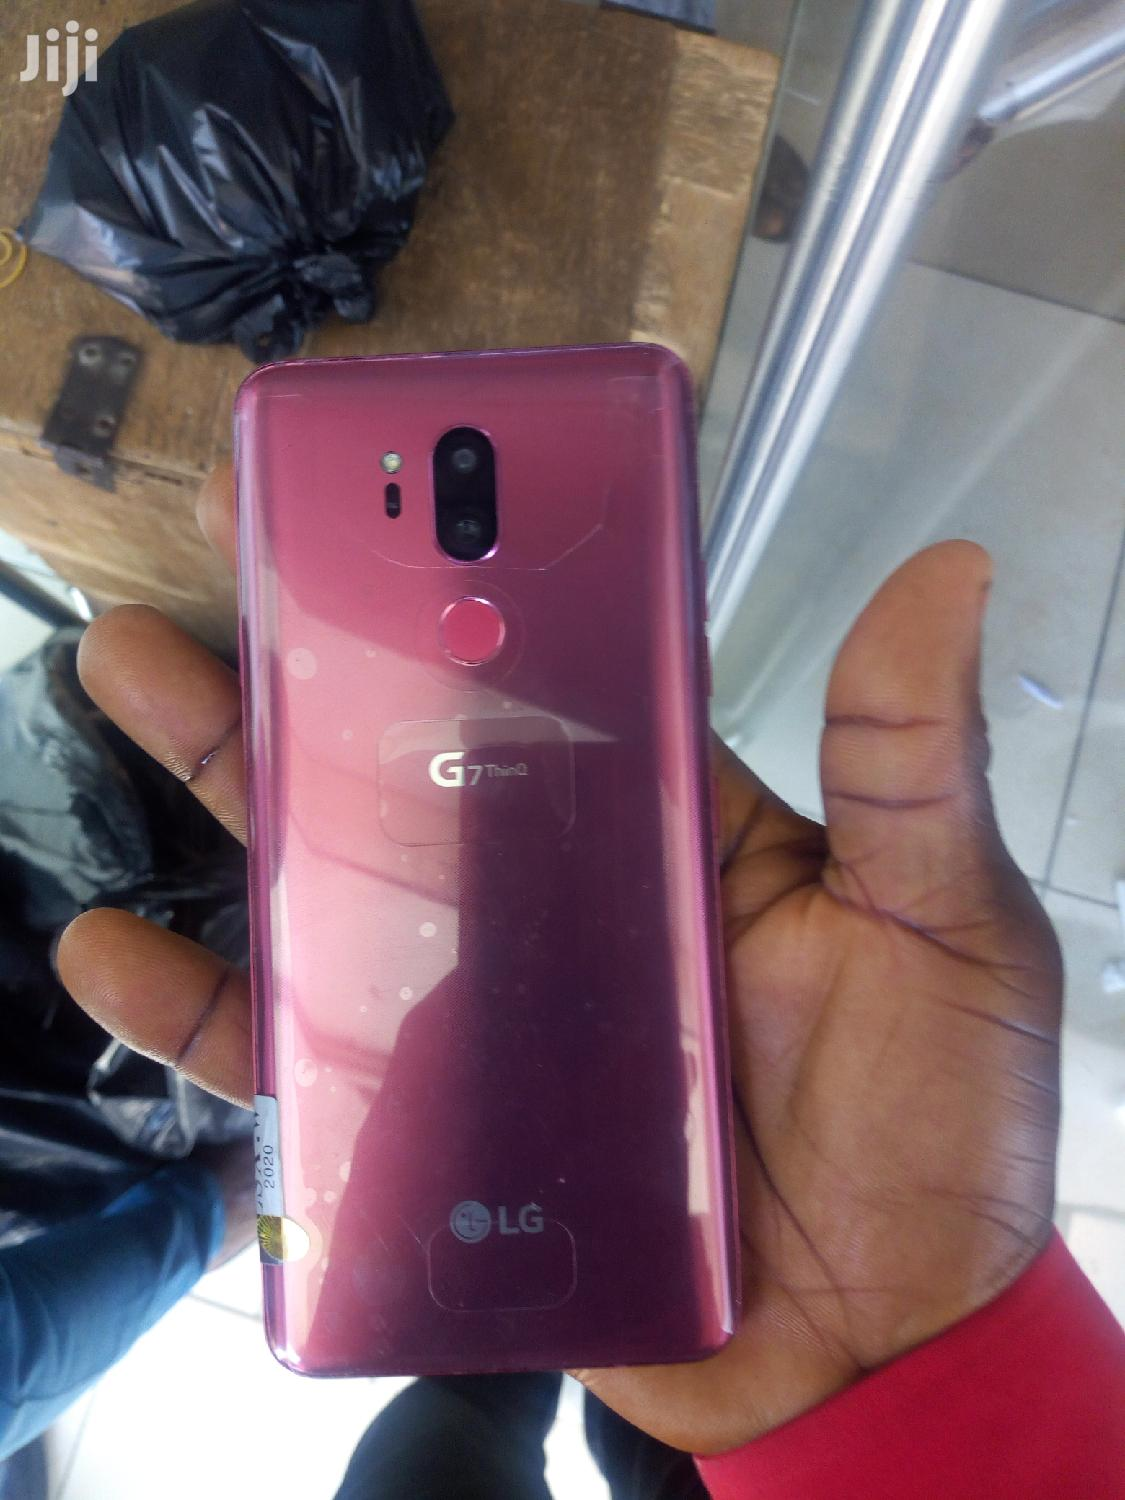 New LG G7 ThinQ 64 GB | Mobile Phones for sale in Kokomlemle, Greater Accra, Ghana